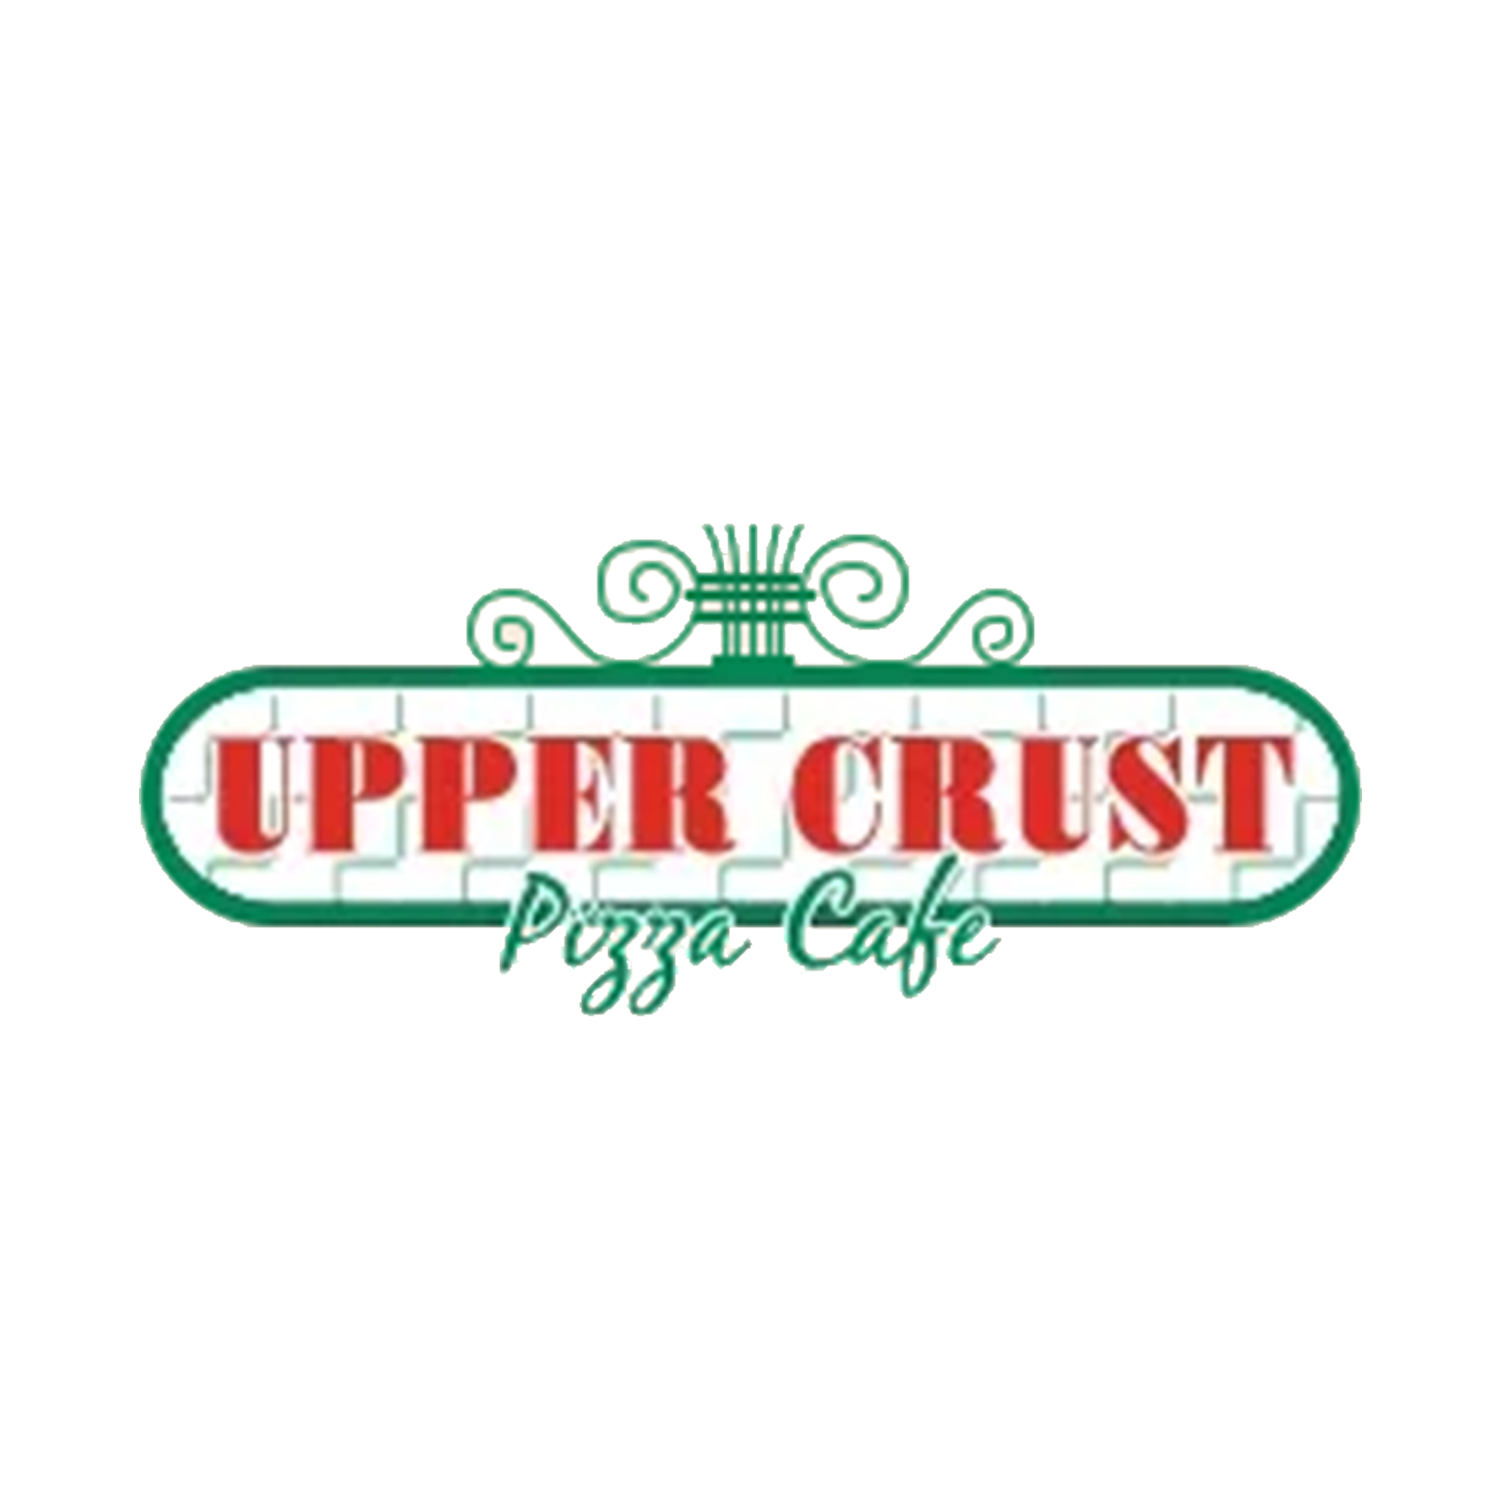 Uppercrust Pizza Cafe